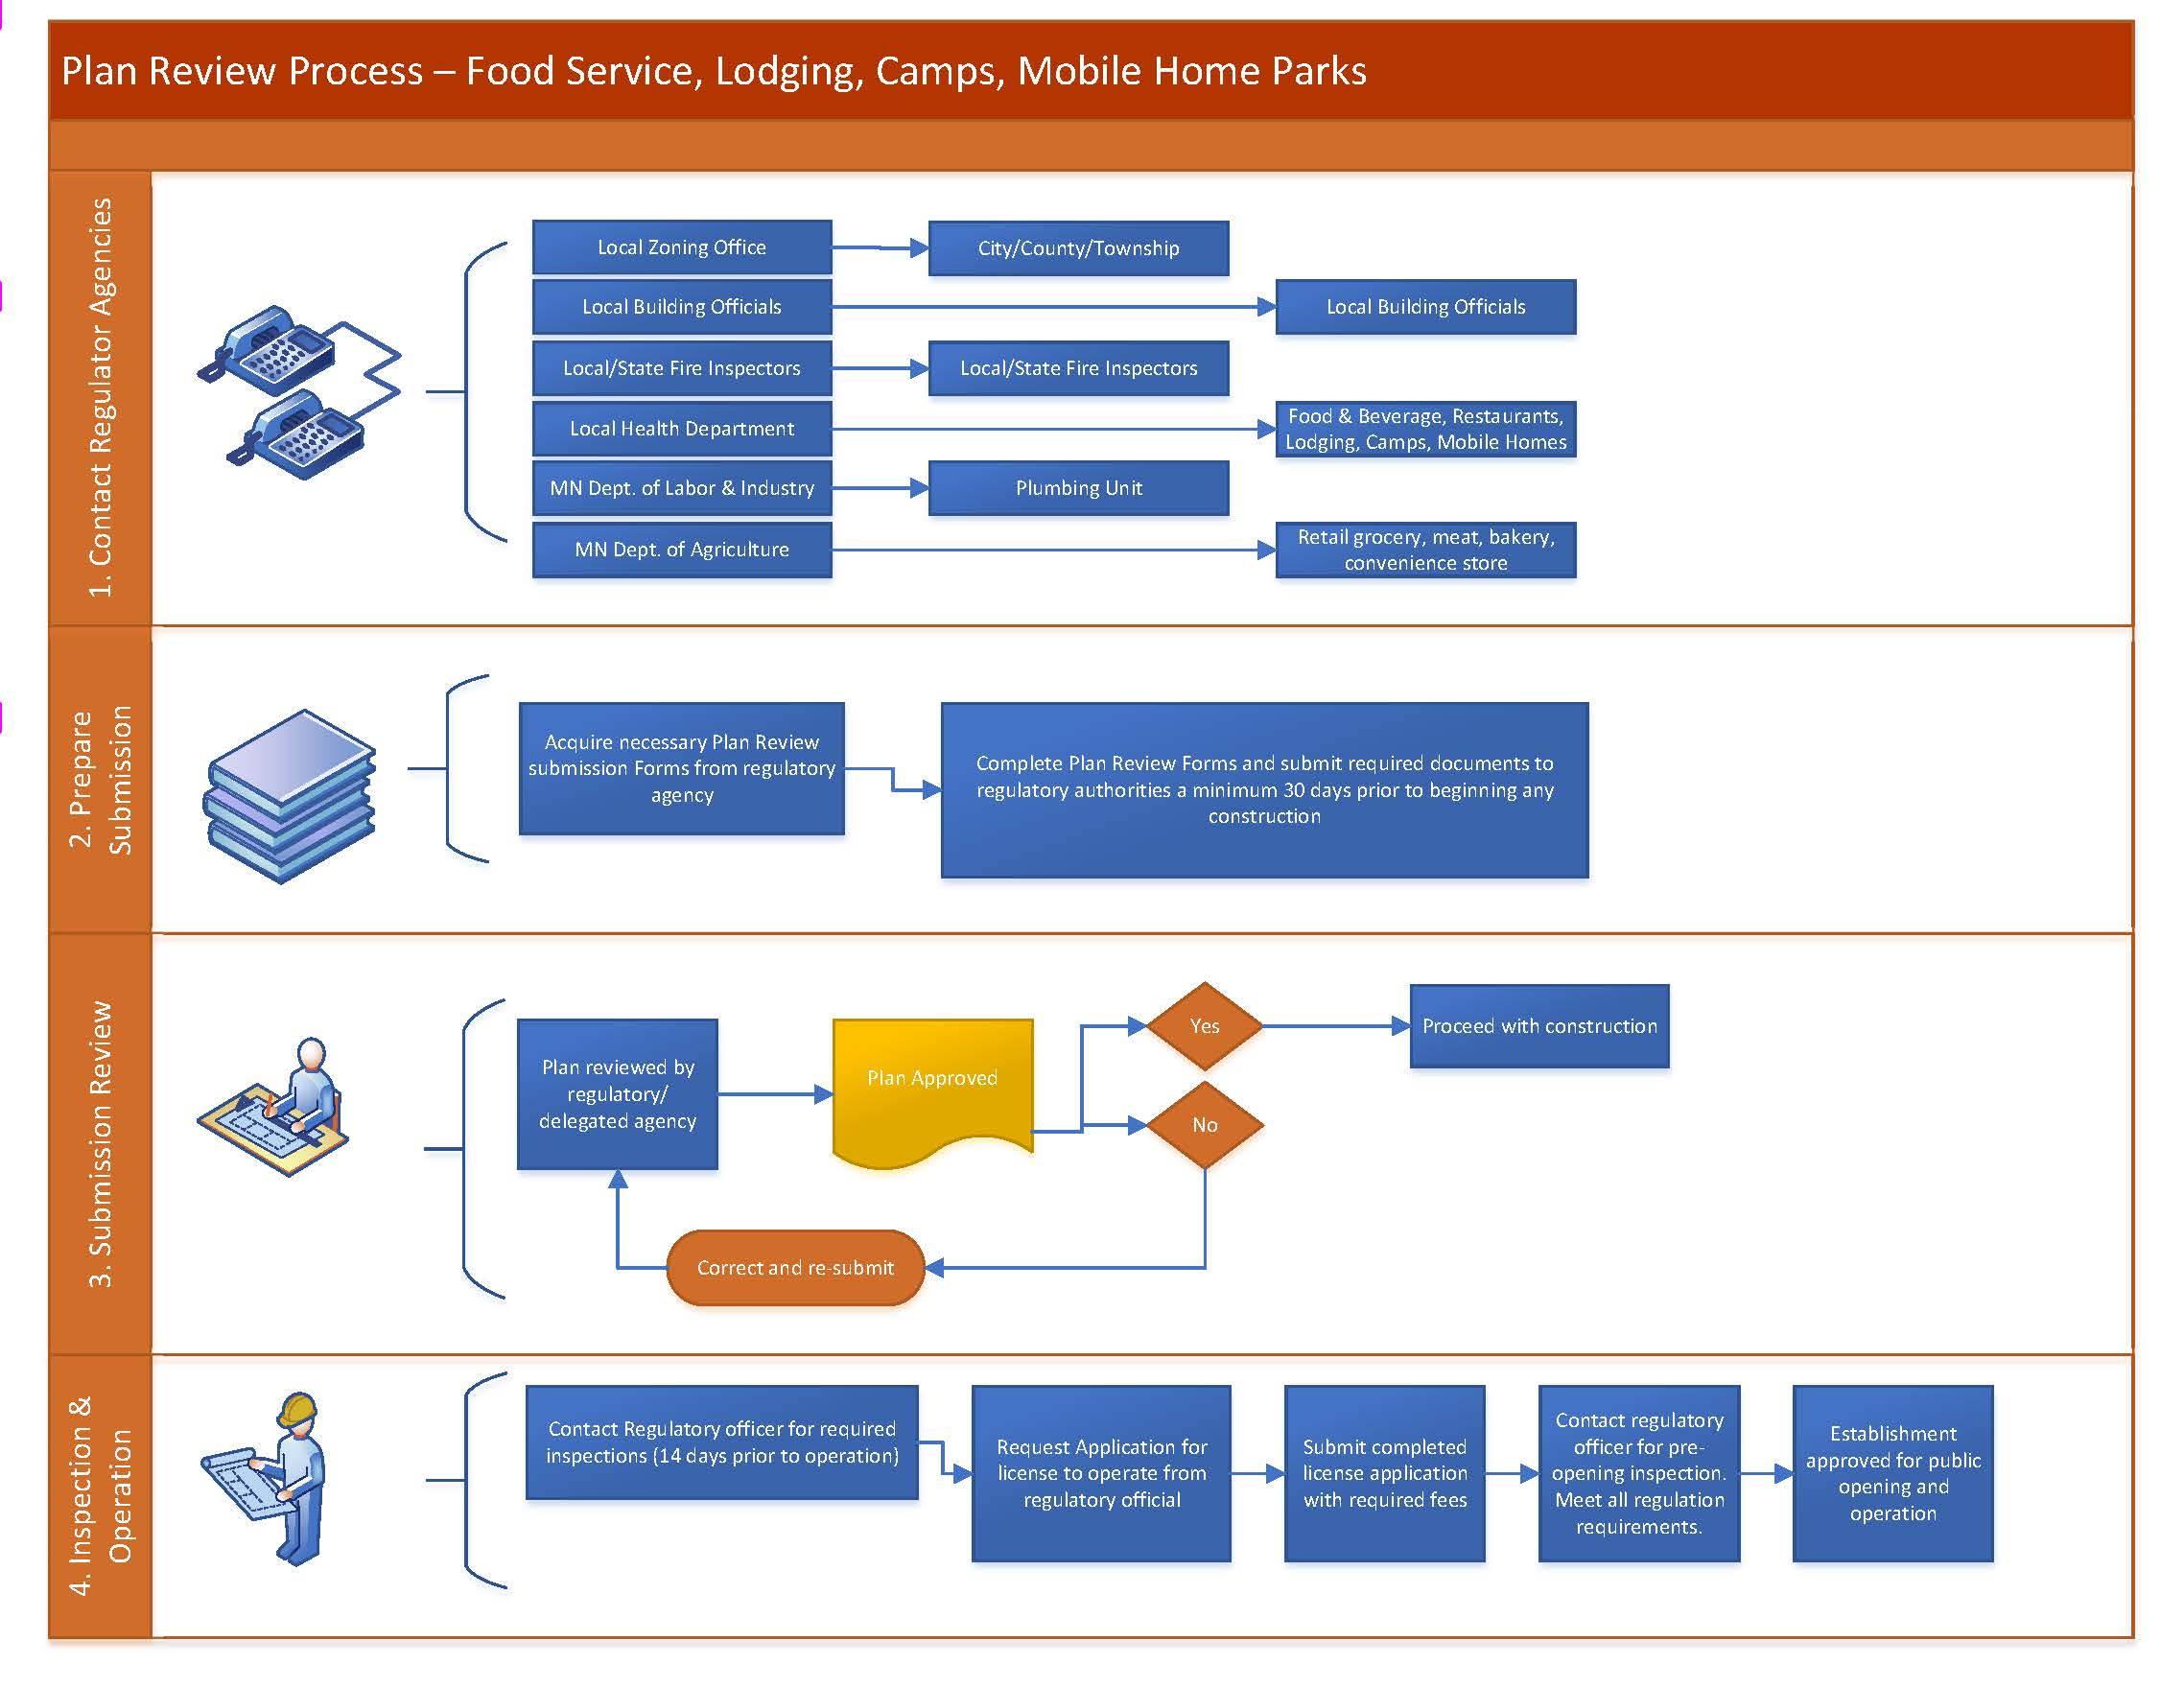 EH Plan Review Process Flow